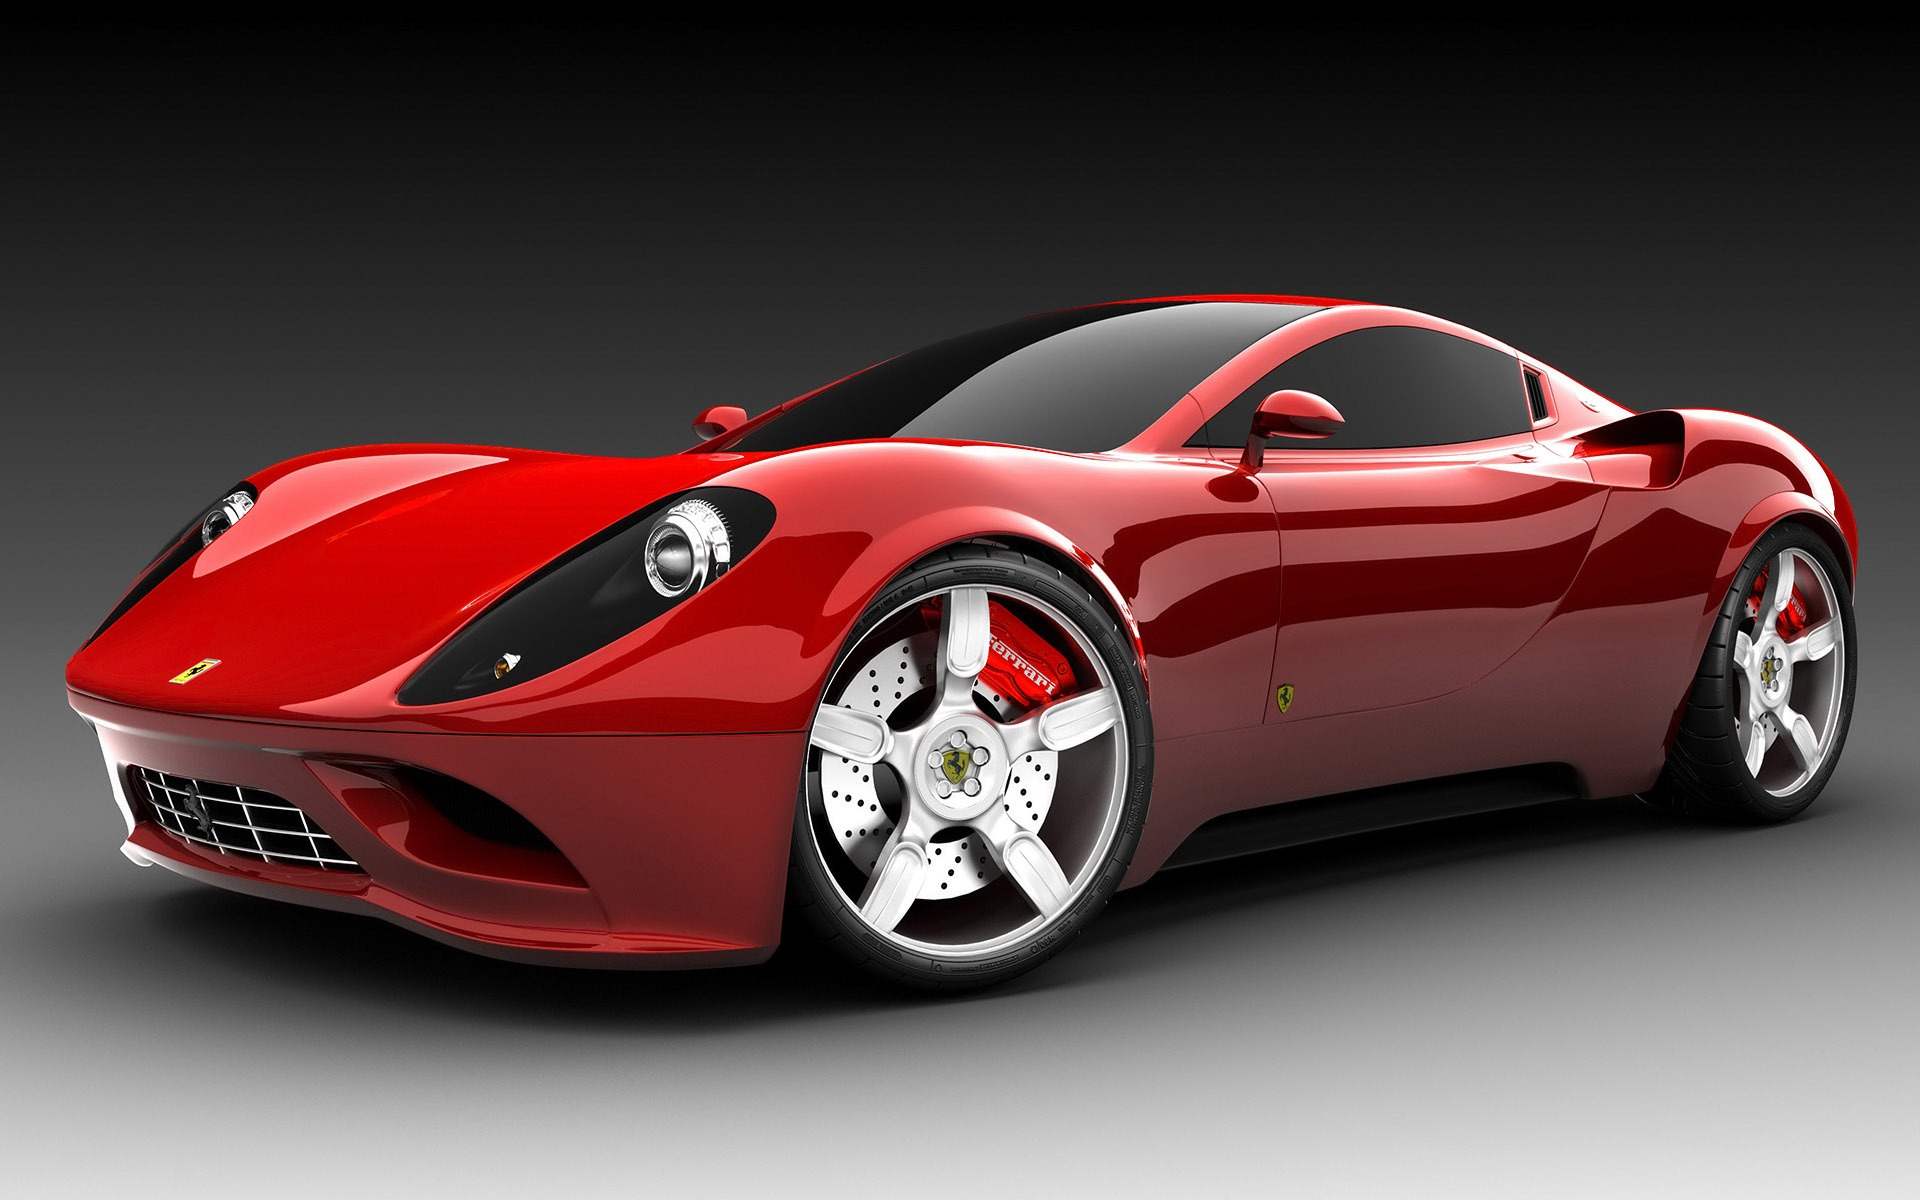 Ferrari car desktop wallpaper hd desktop wallpapers free to download 1920x1200